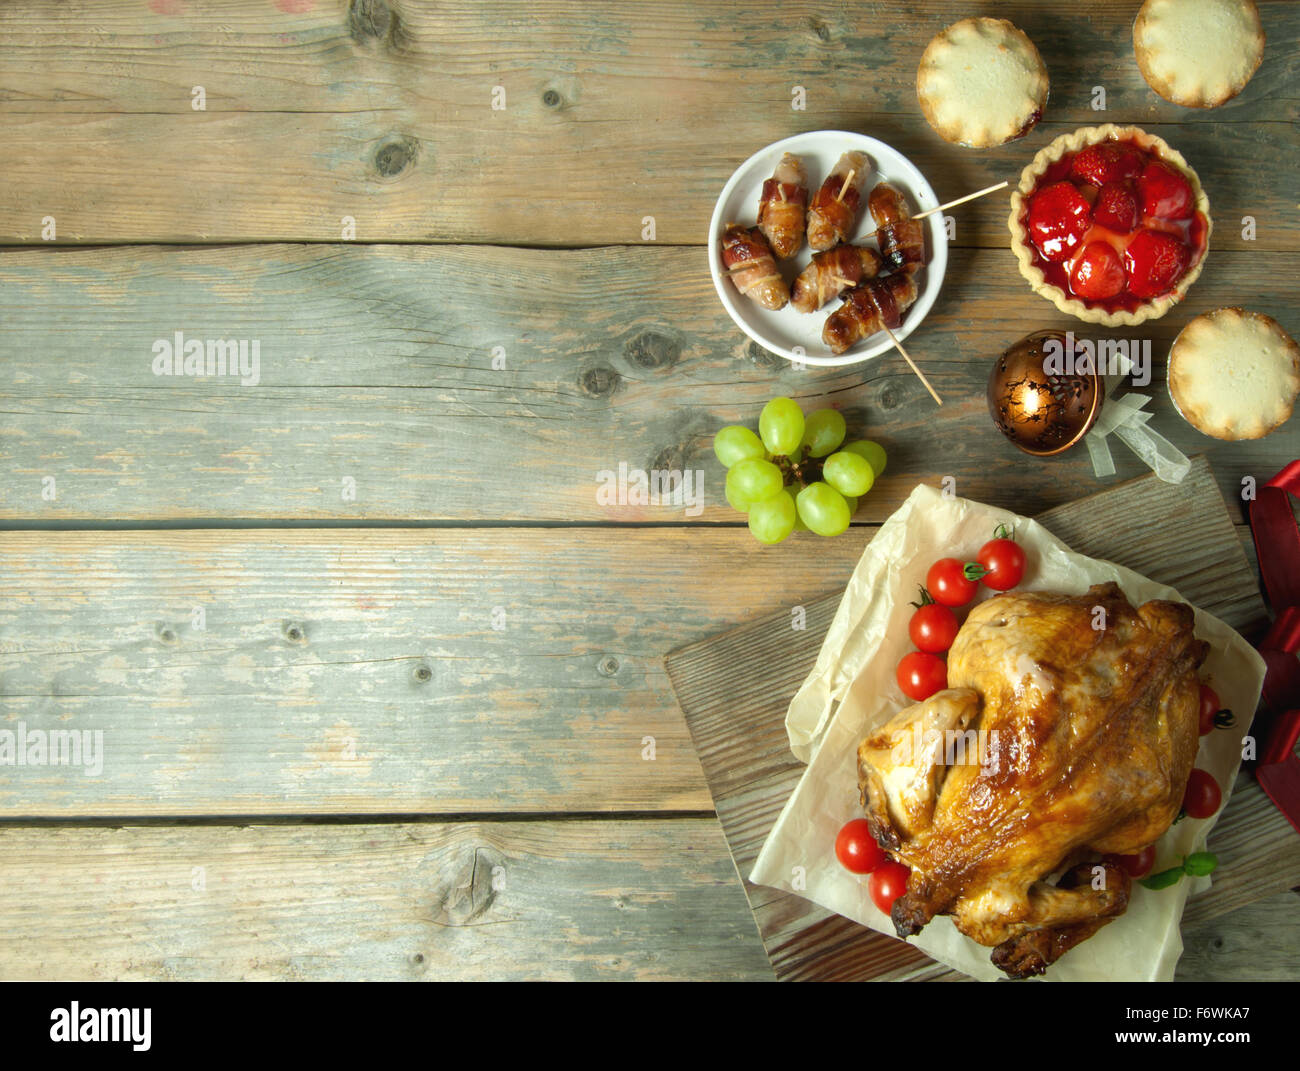 Christmas and thanksgiving savory and sweet food selection on top of a wooden background with copyspace - Stock Image